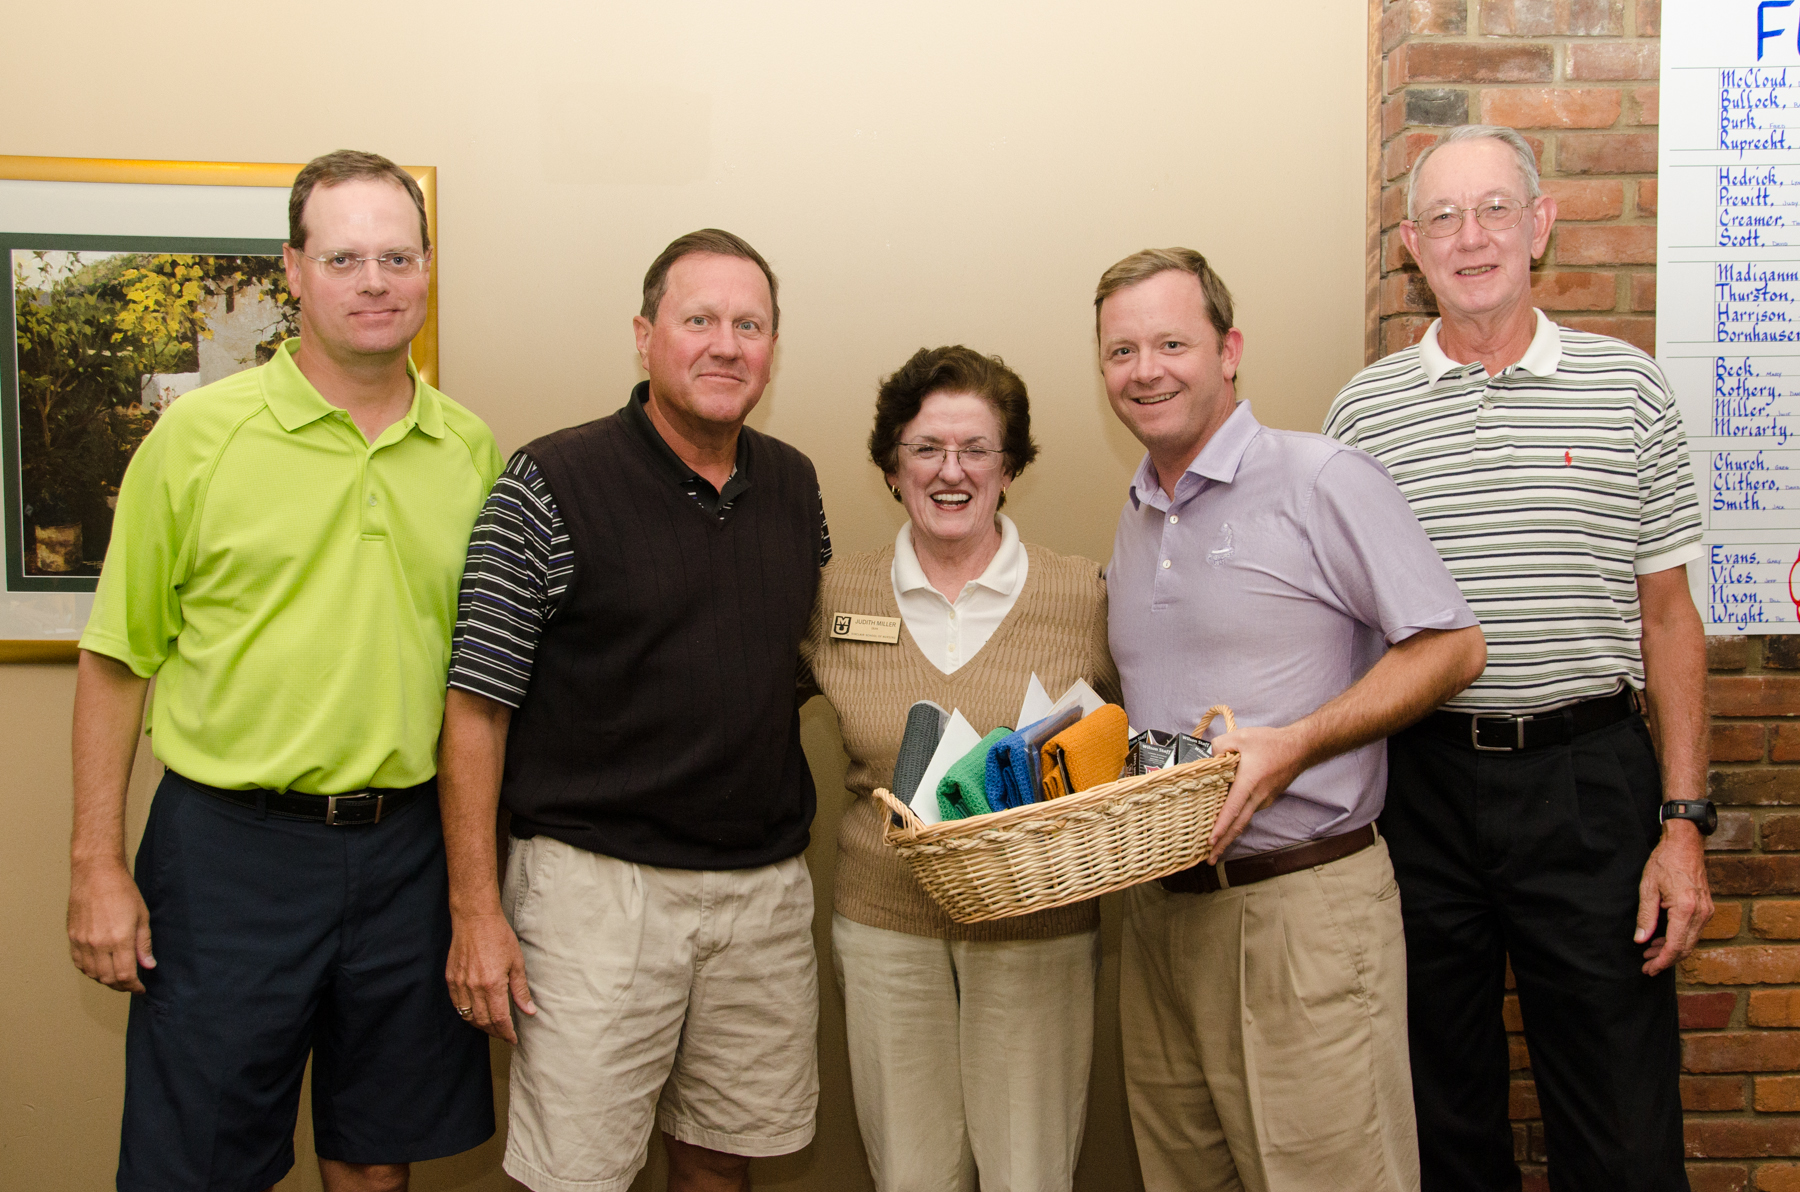 20121001_golf_tournament_130_4x6.jpg